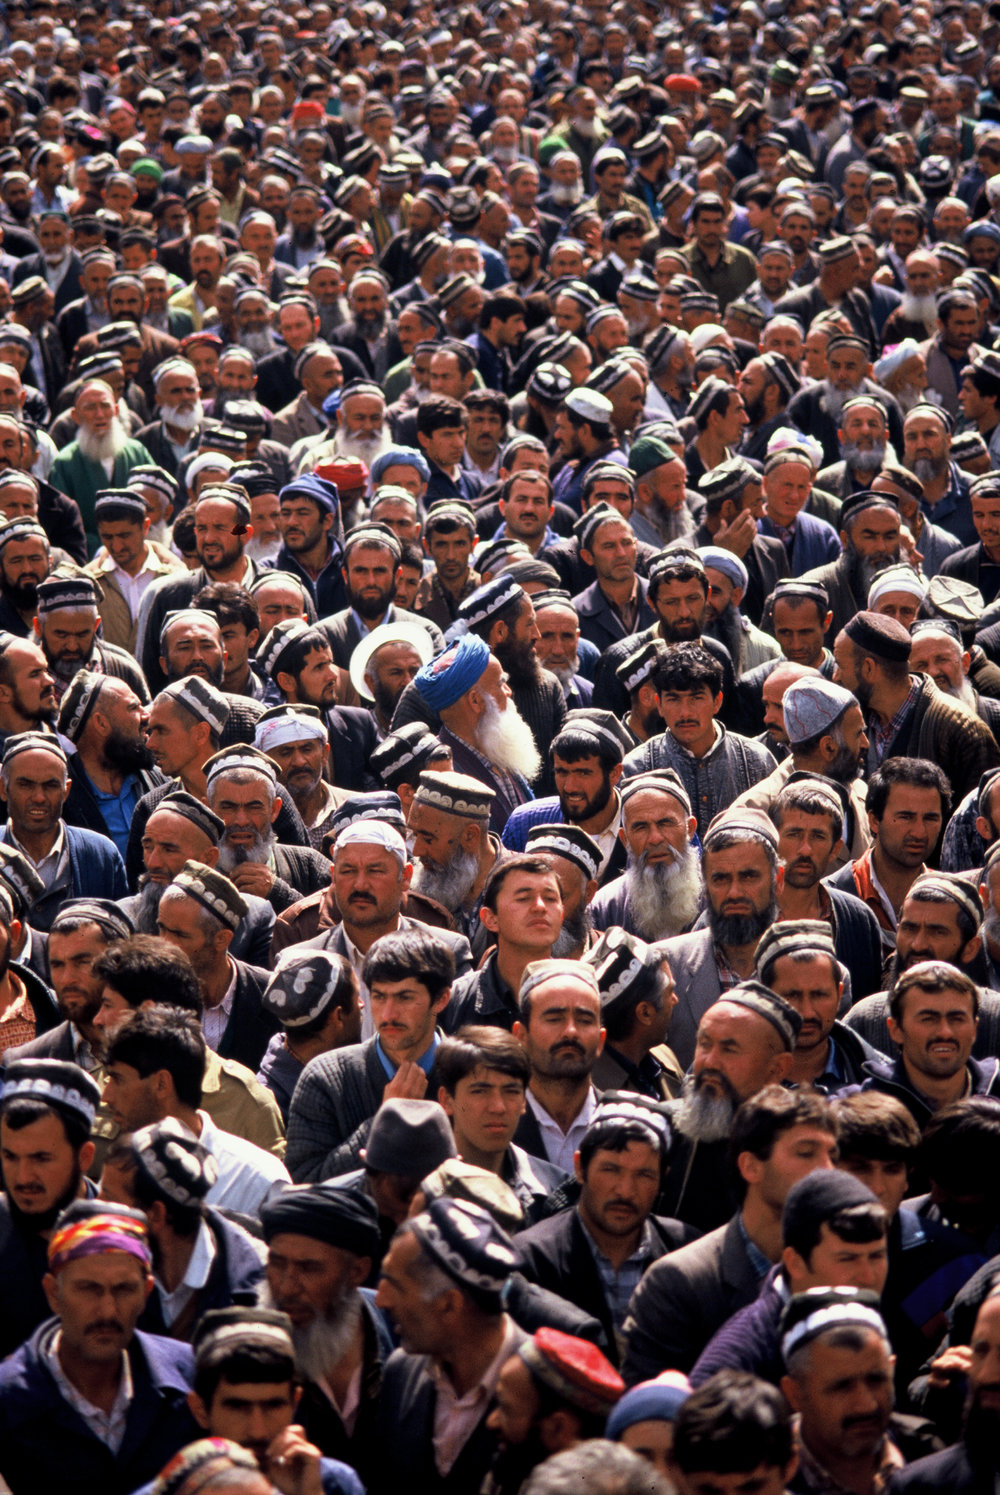 Islamic Renaissance Party members during a protest to overthrow the Soviet backed government in power in Dushanbe, Tajikistan. 1992